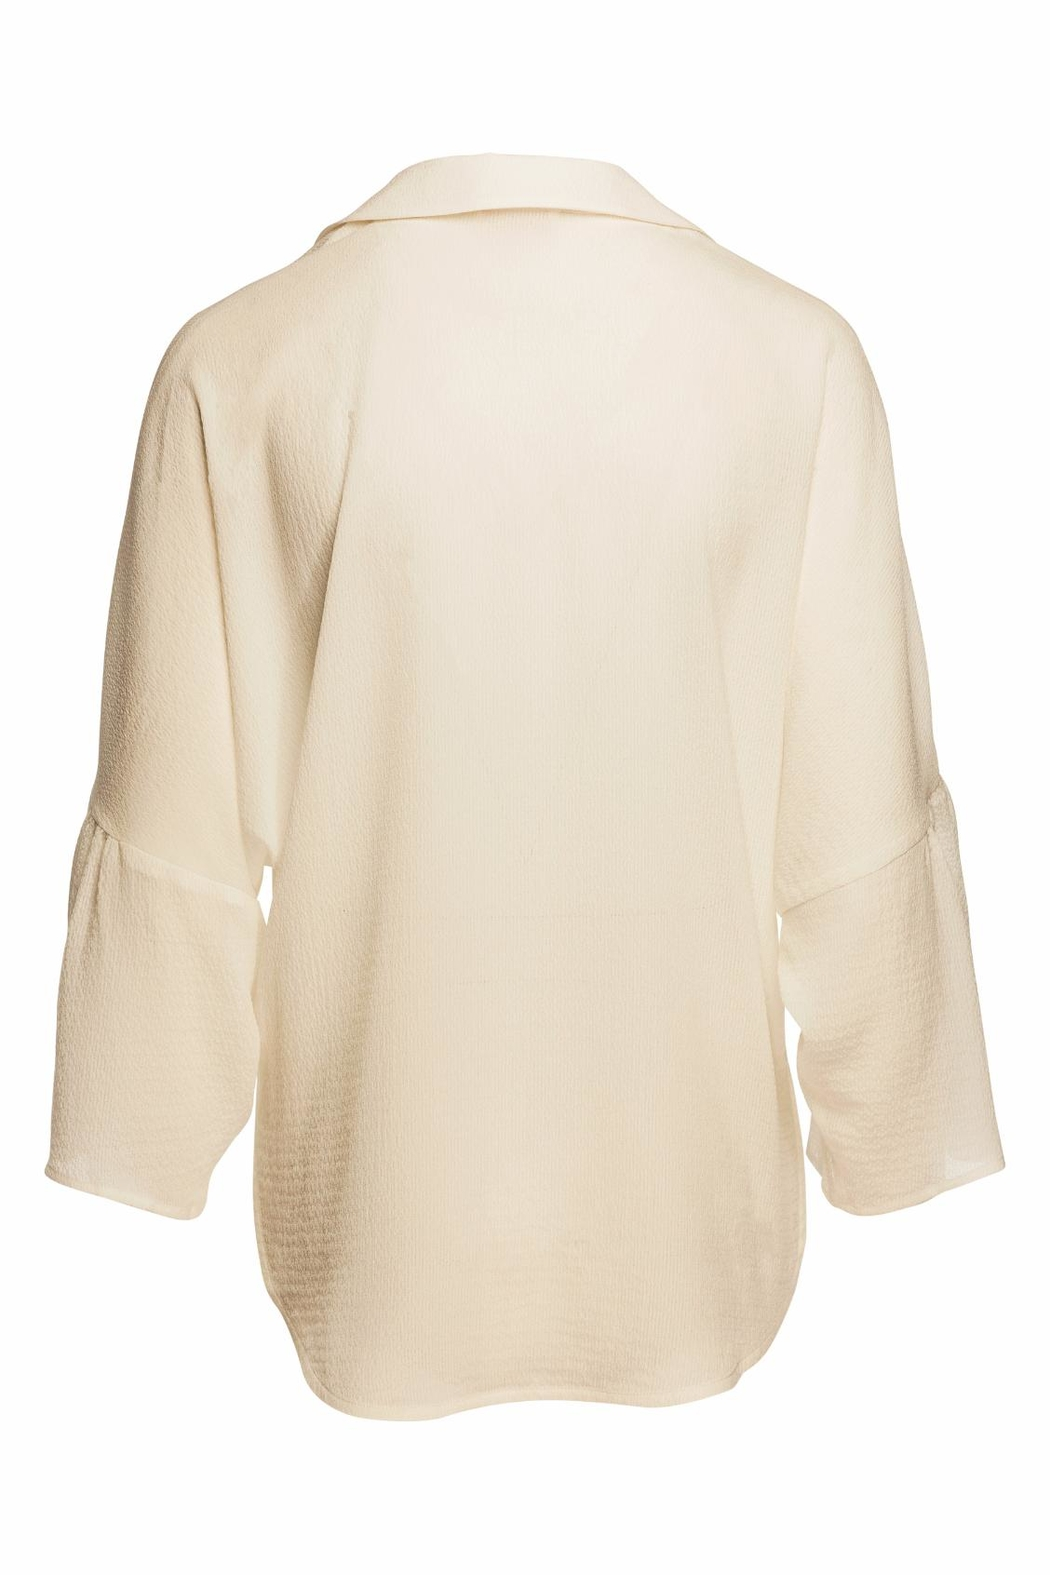 Ella Moss Natural Oversize Top - Front Full Image